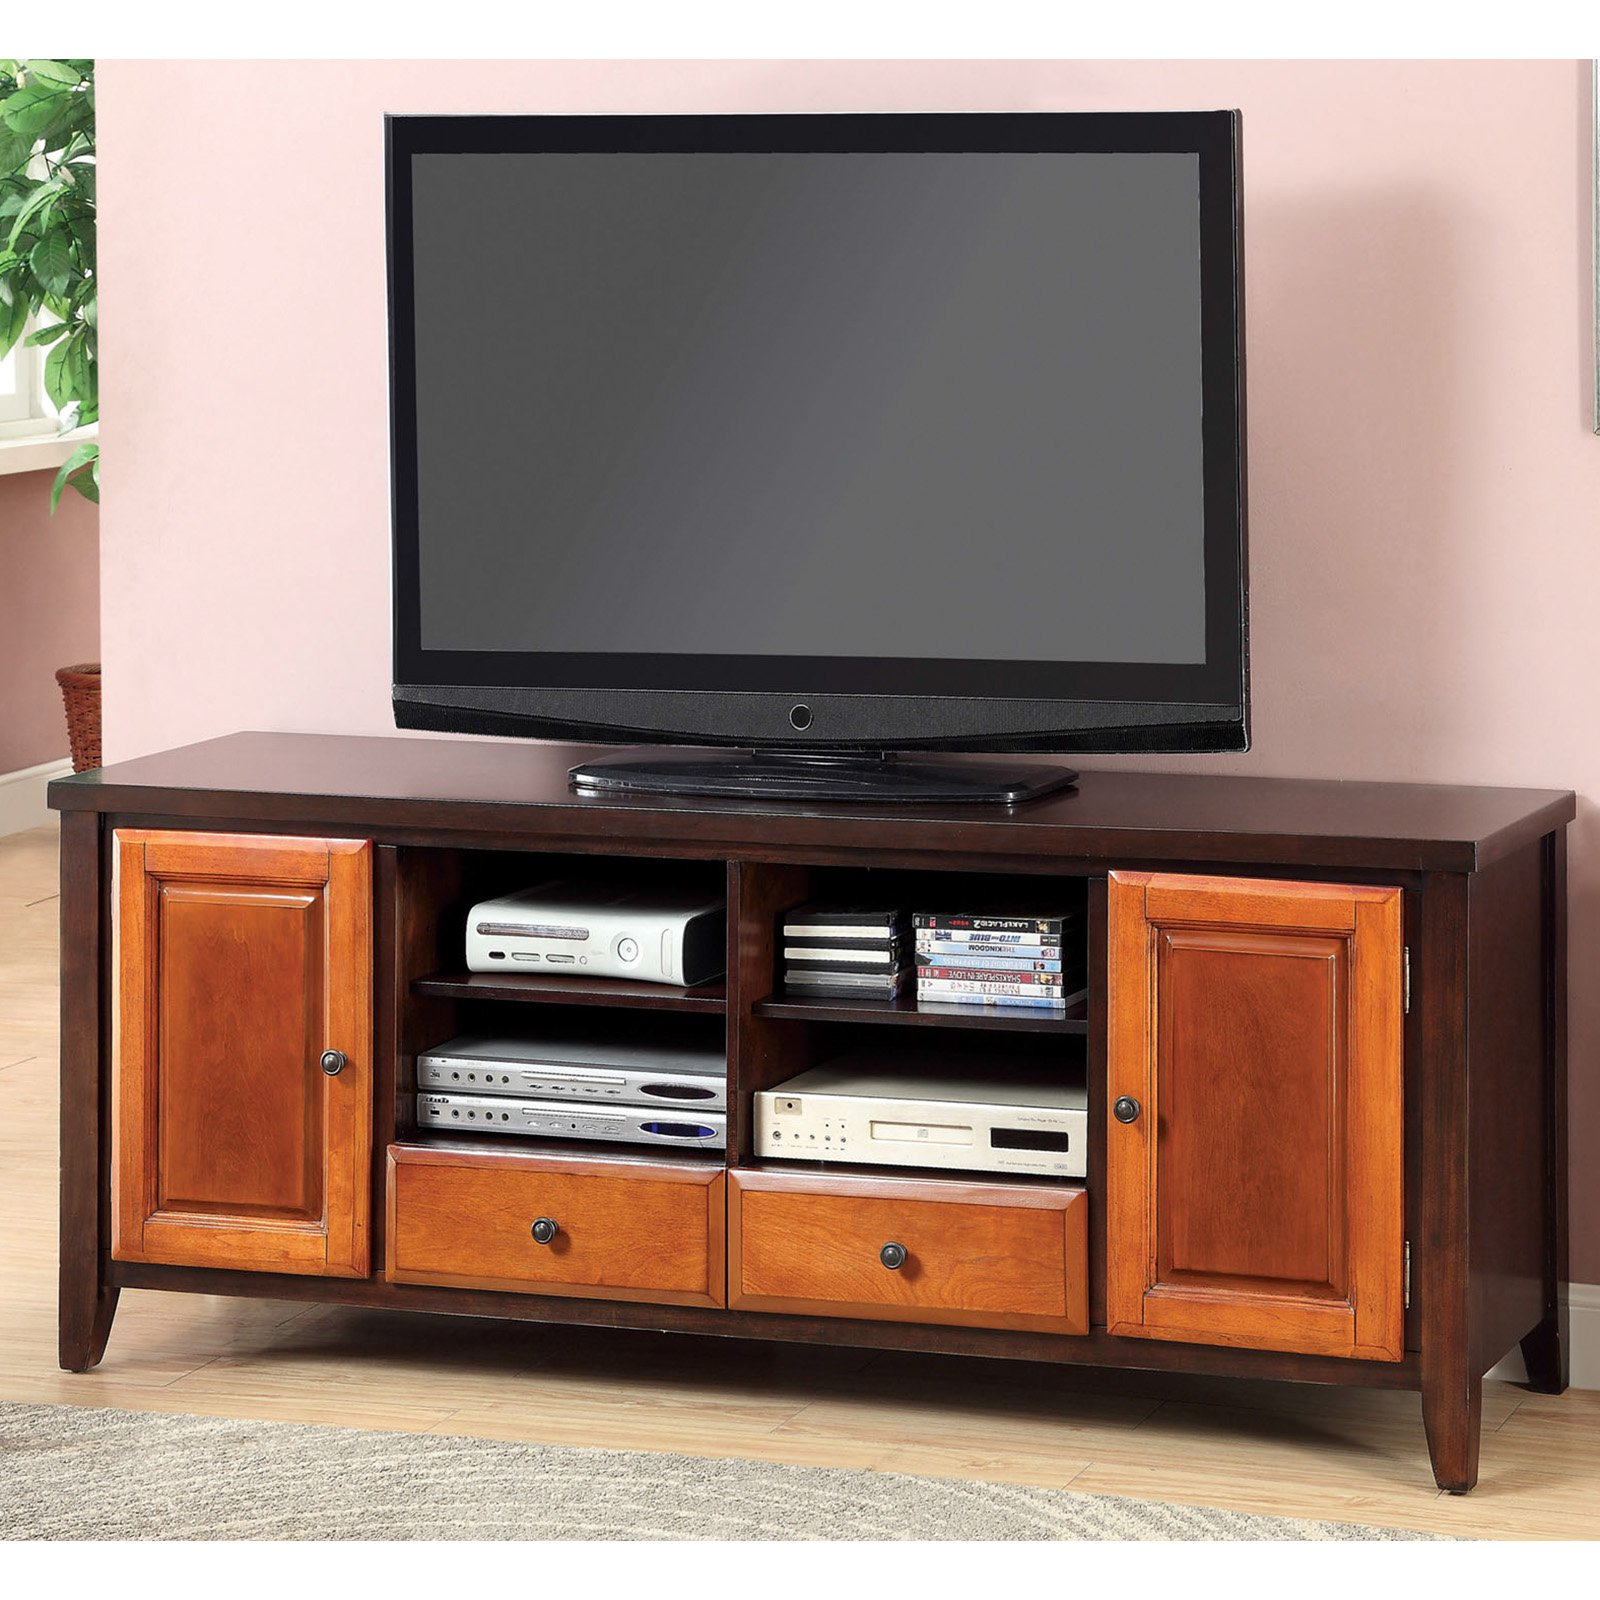 Furniture of America 72 in. DuoTone Media Cabinet with Storage Cabinet Dark Oak   Cherry by Furniture of America